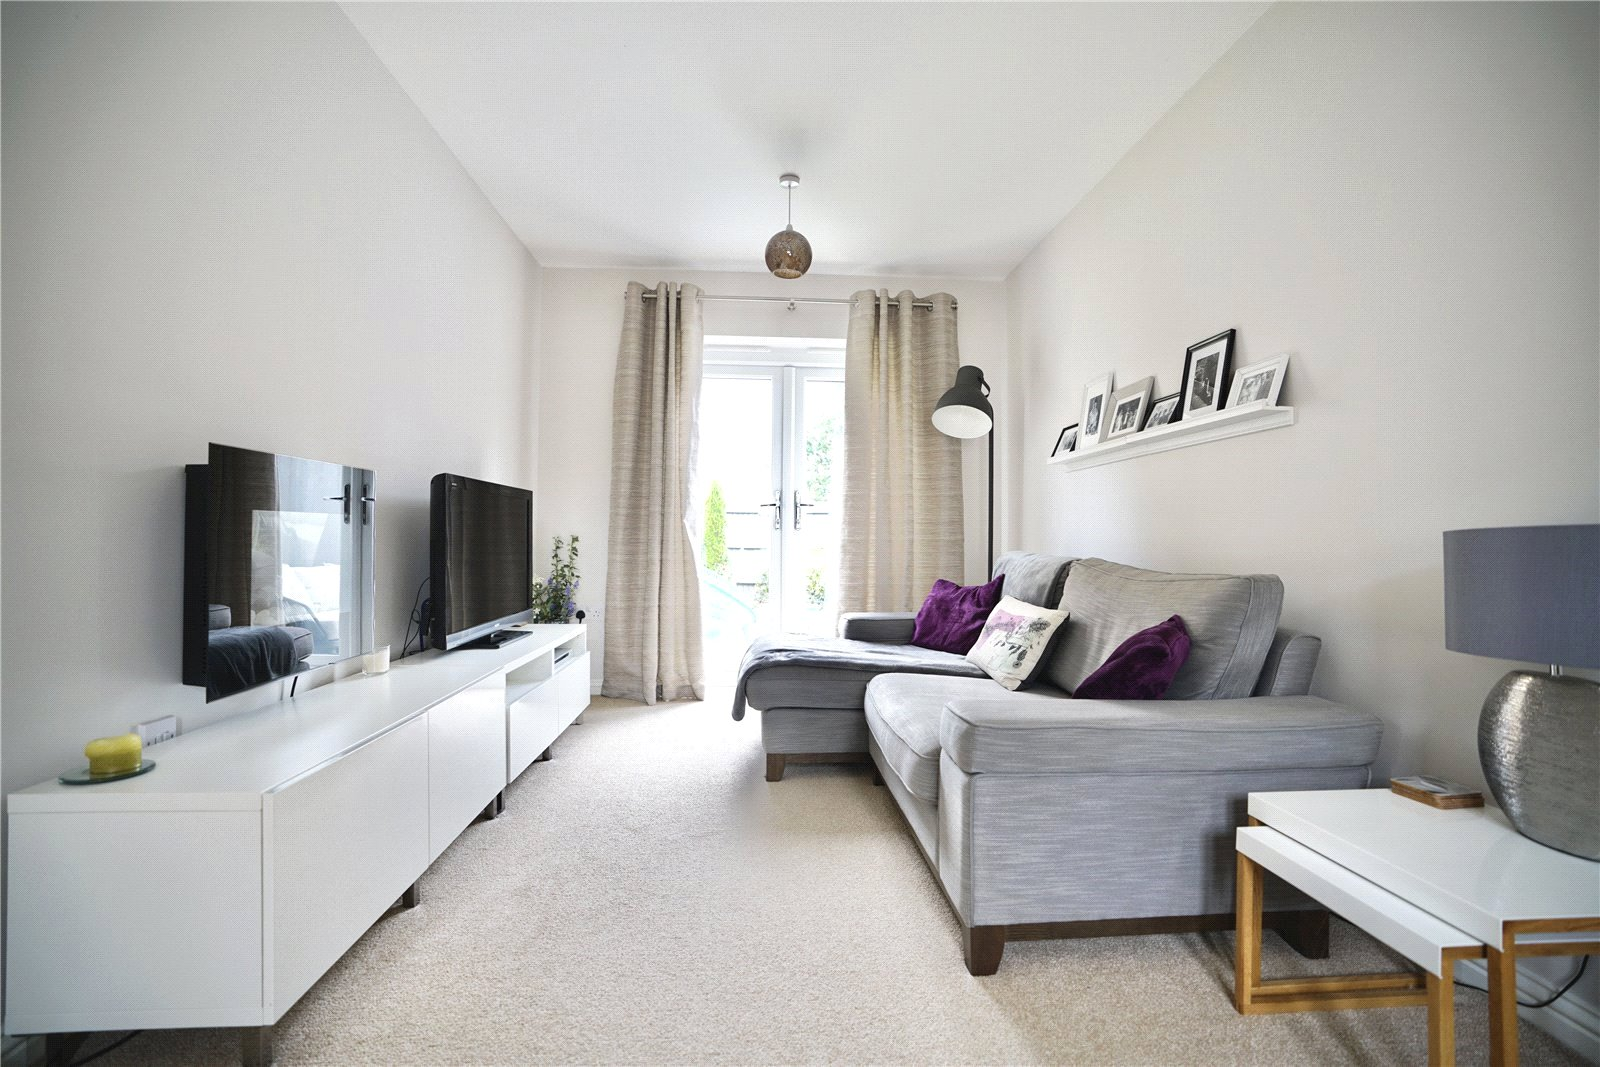 3 bed house for sale in St. Ives, PE27 5DL 2